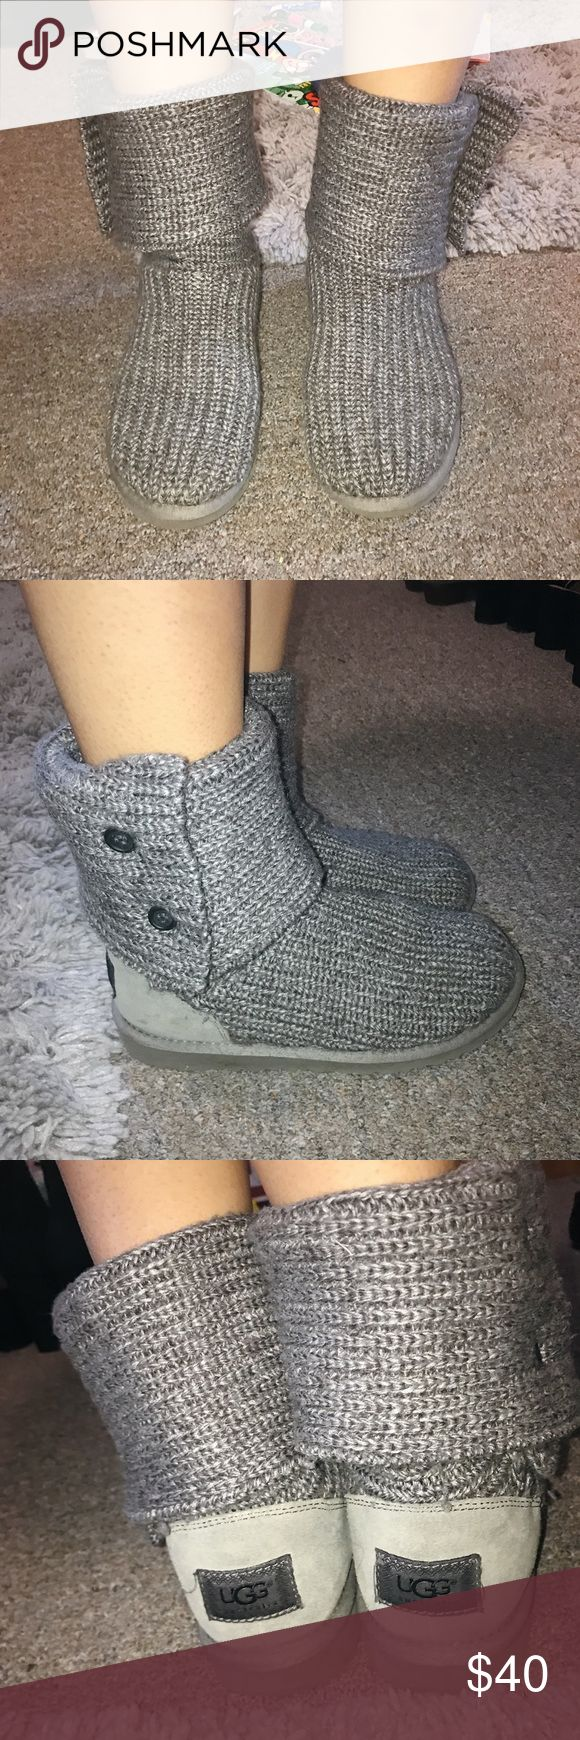 Kids UGGS cable knit in grey Size 4.5, cable knit uggs for kids / good condition & has no rips or stains. Equivalent size for women's 6.5 UGG Shoes Winter & Rain Boots